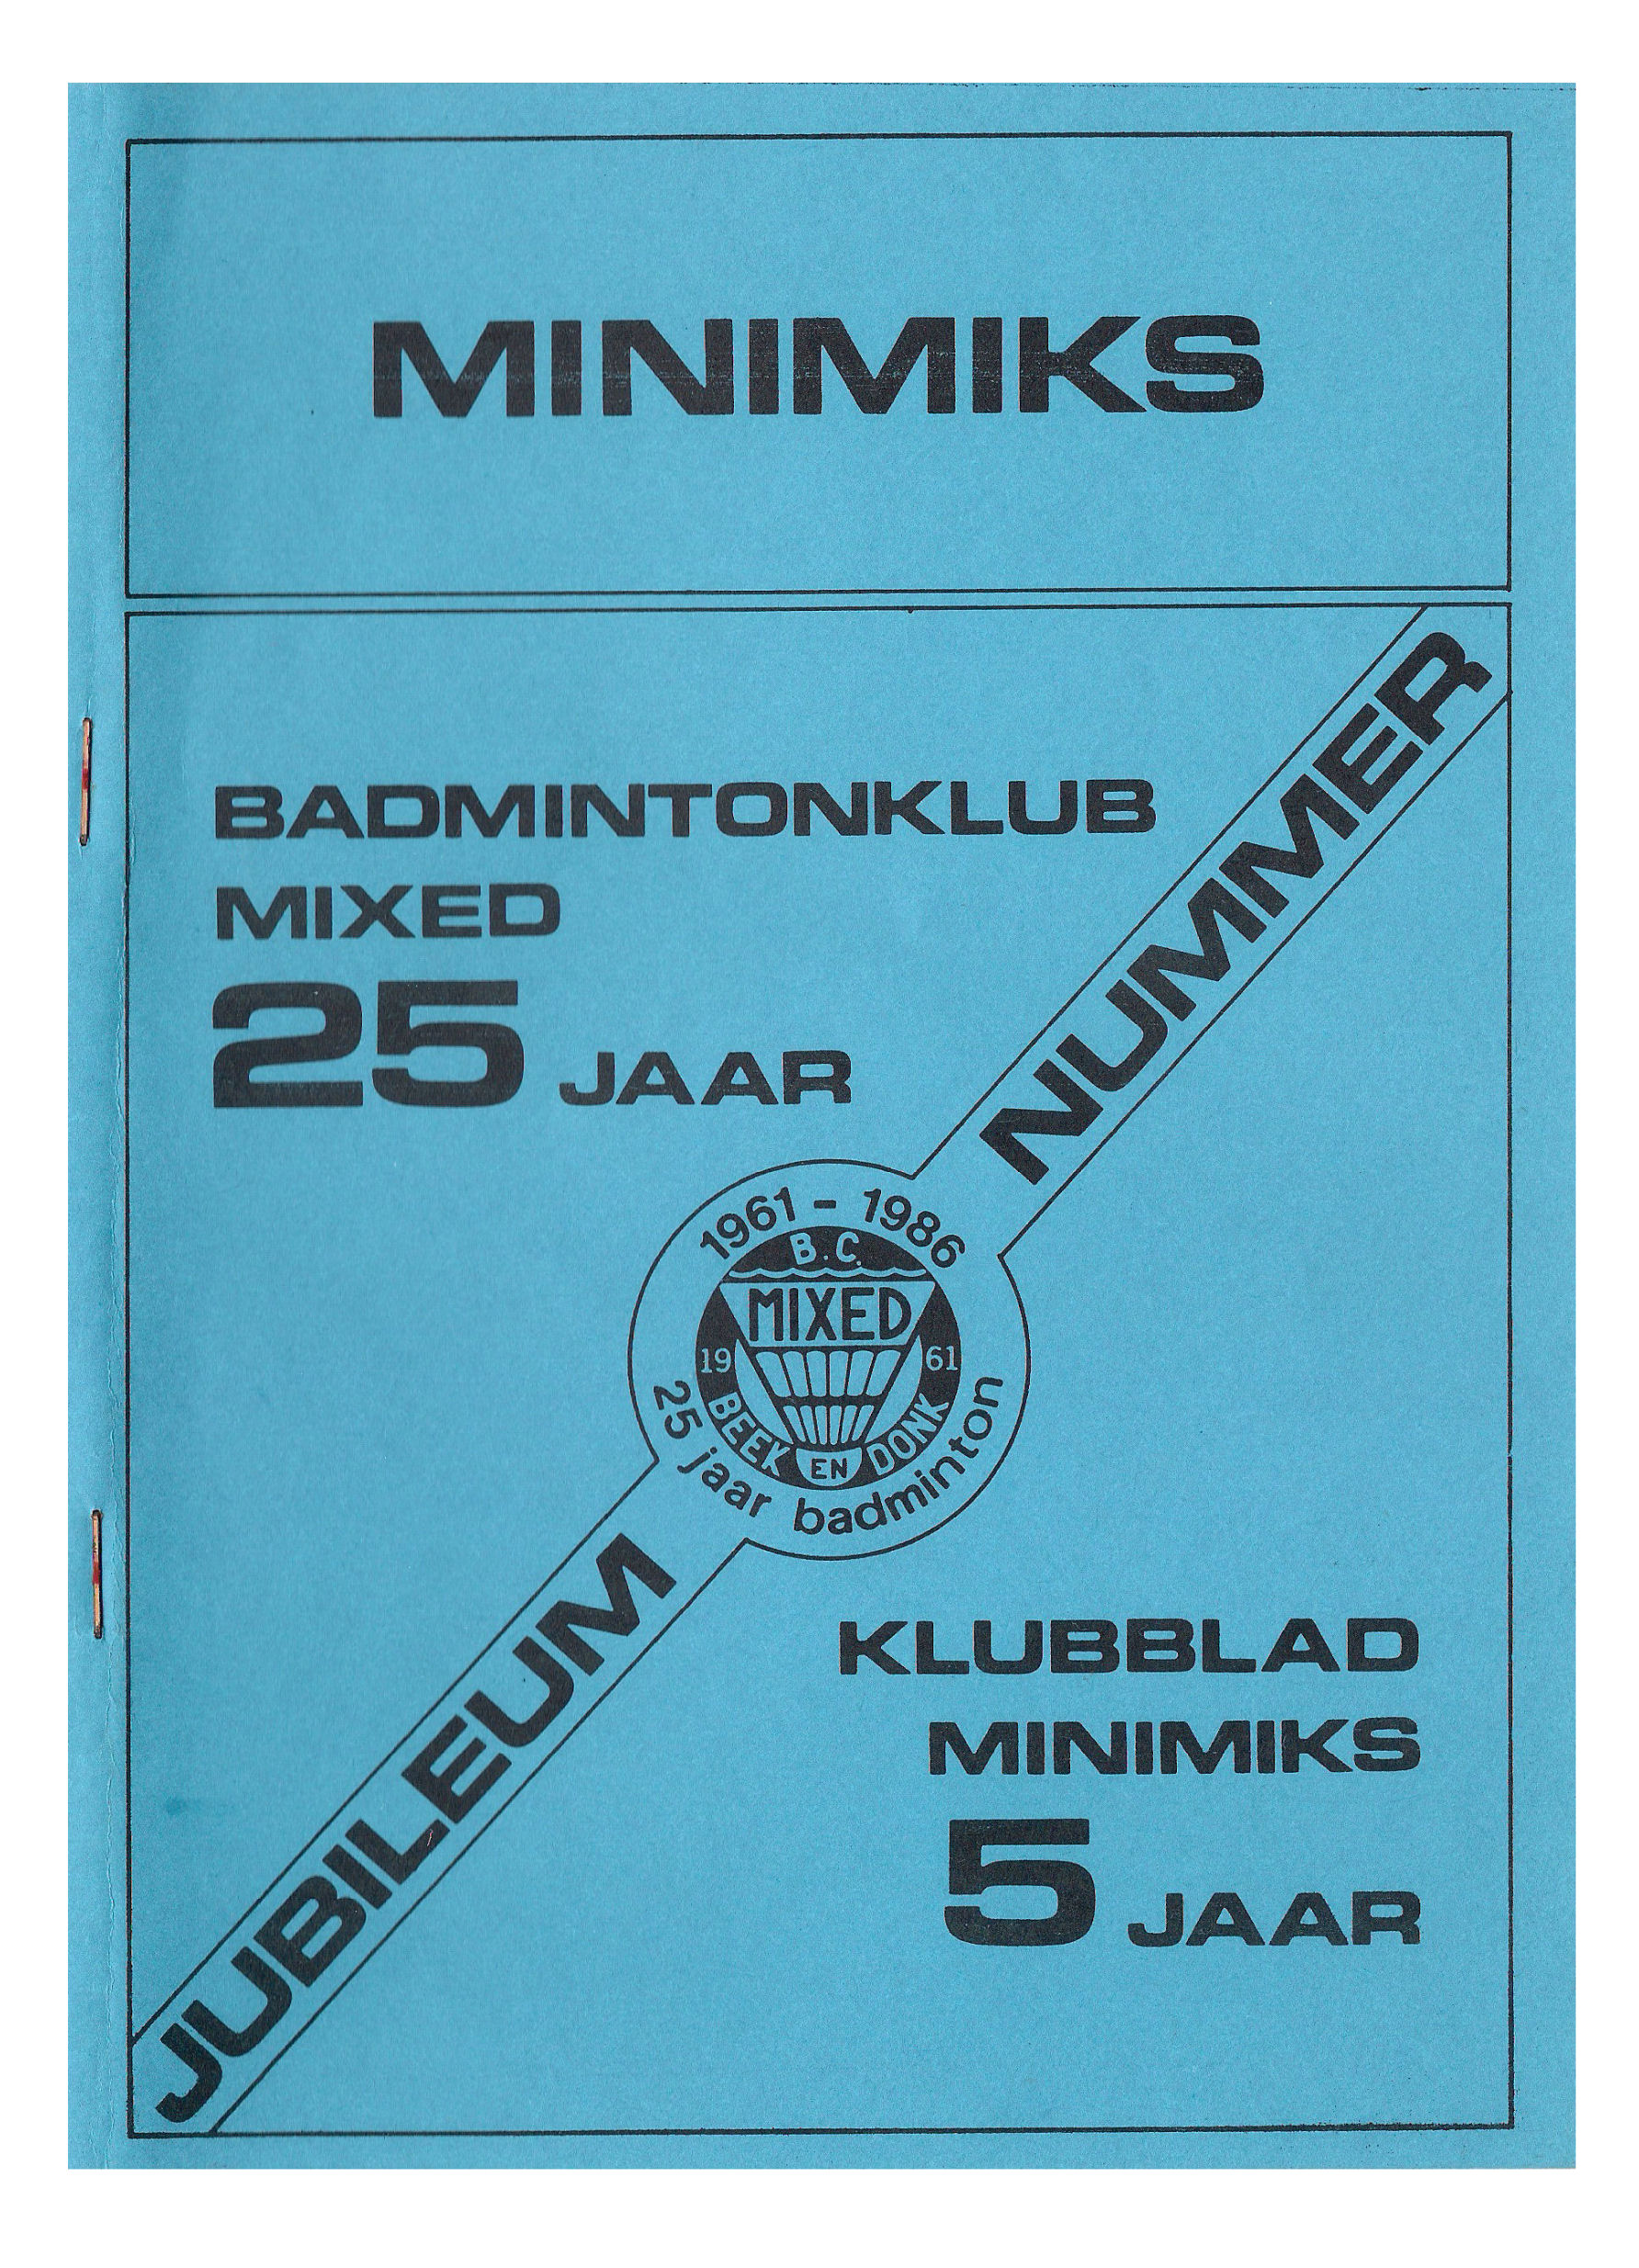 Clubblad januari 1986